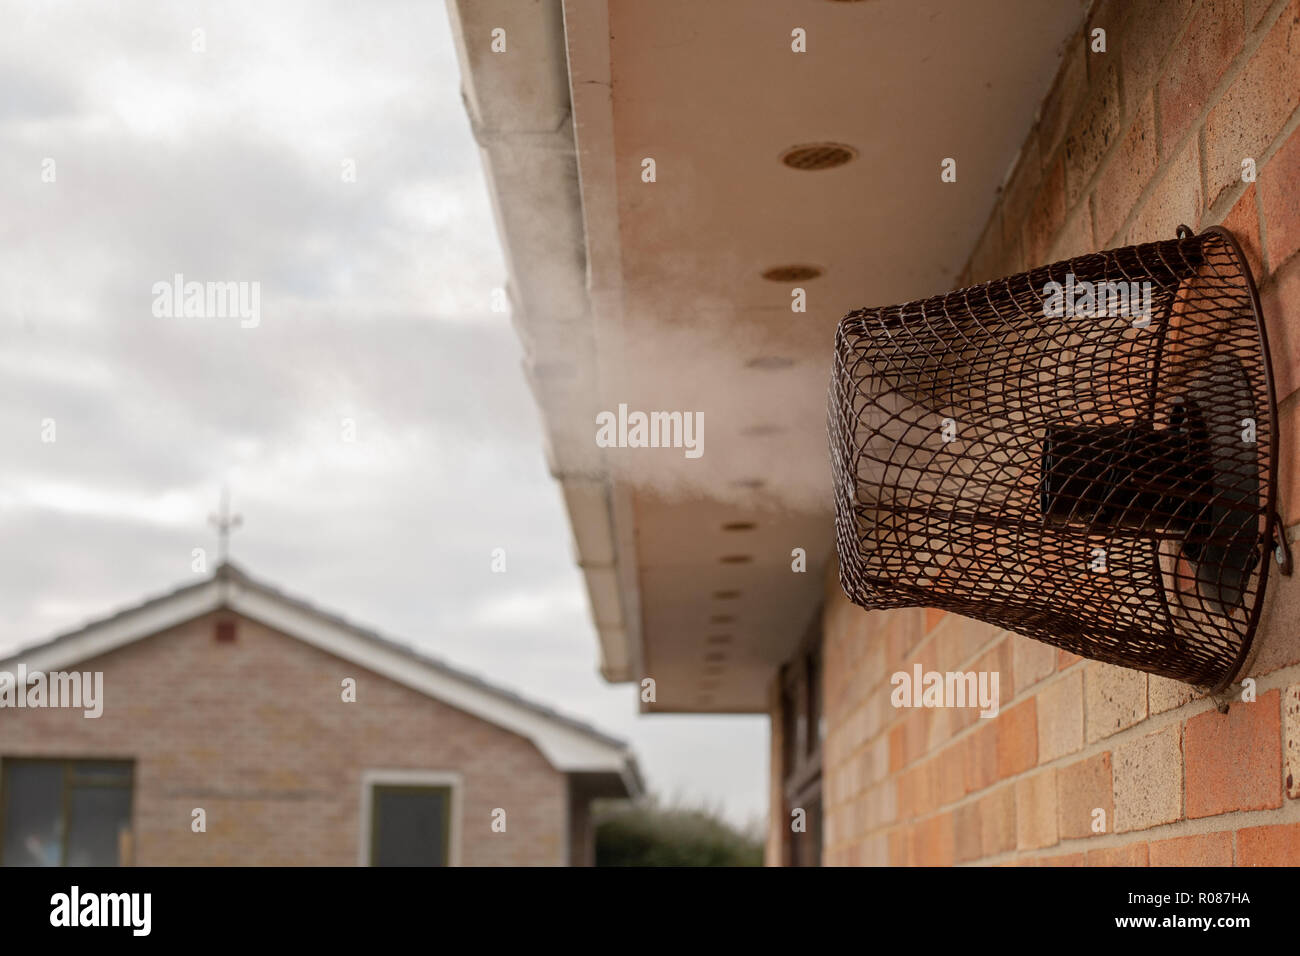 Heating vent pushing out steam vapour in winter - Stock Image